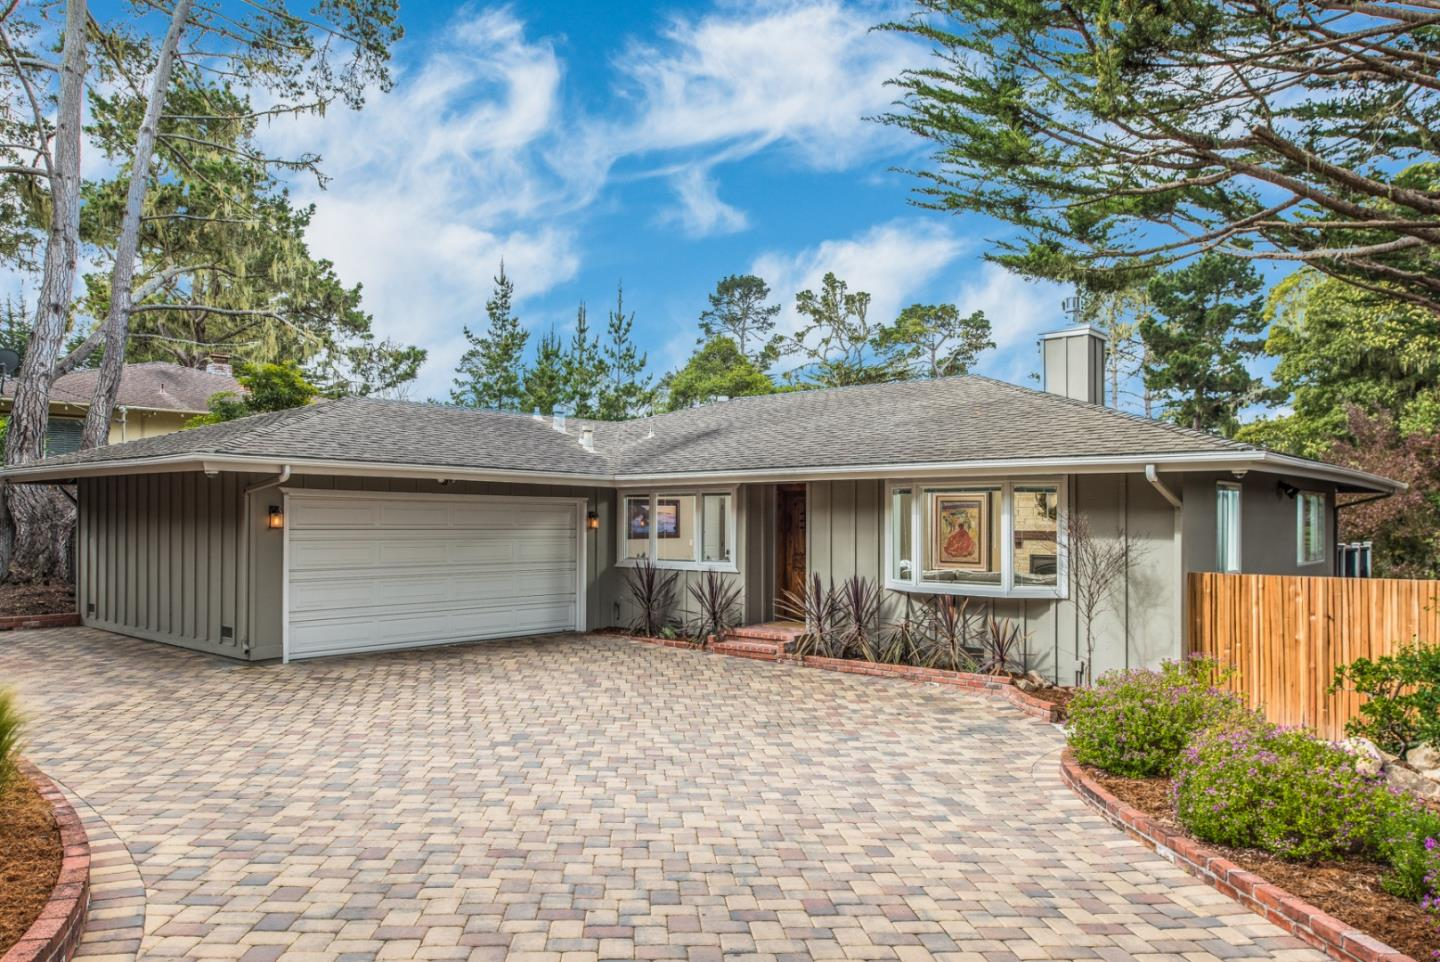 3022 Lopez Road Pebble Beach, CA 93953 - MLS #: ML81702425